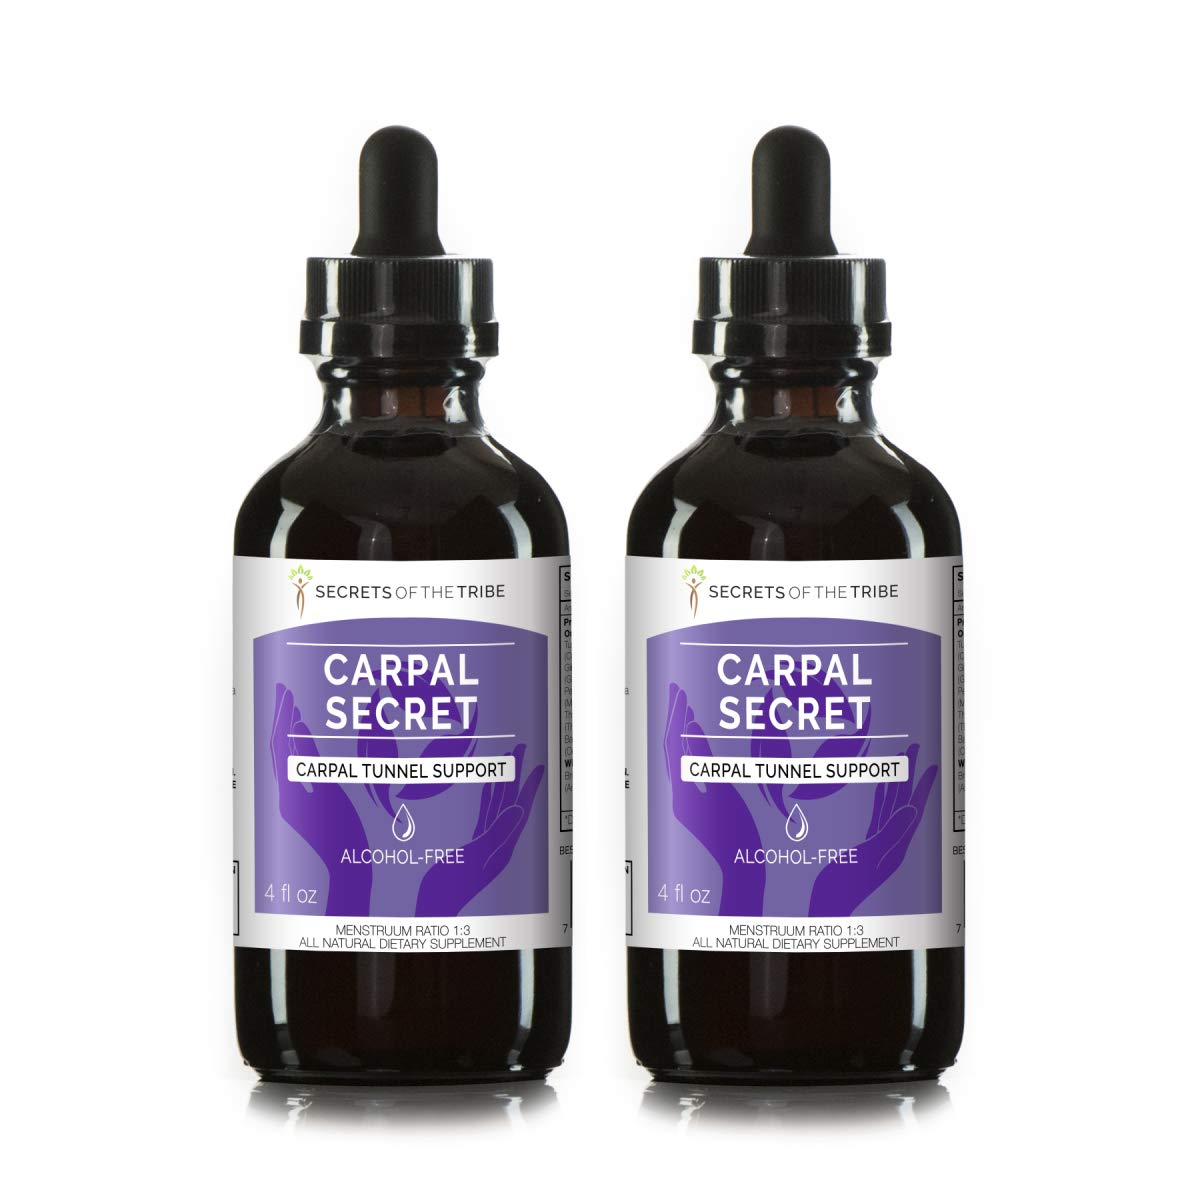 Carpal Secret Alcohol-Free Extract, Tincture, Glycerite Bromelain, Pineapple, Turmeric, Ginkgo, Peppermint, Thyme, Basil. Carpal Tunnel Support (2x4 FL OZ)